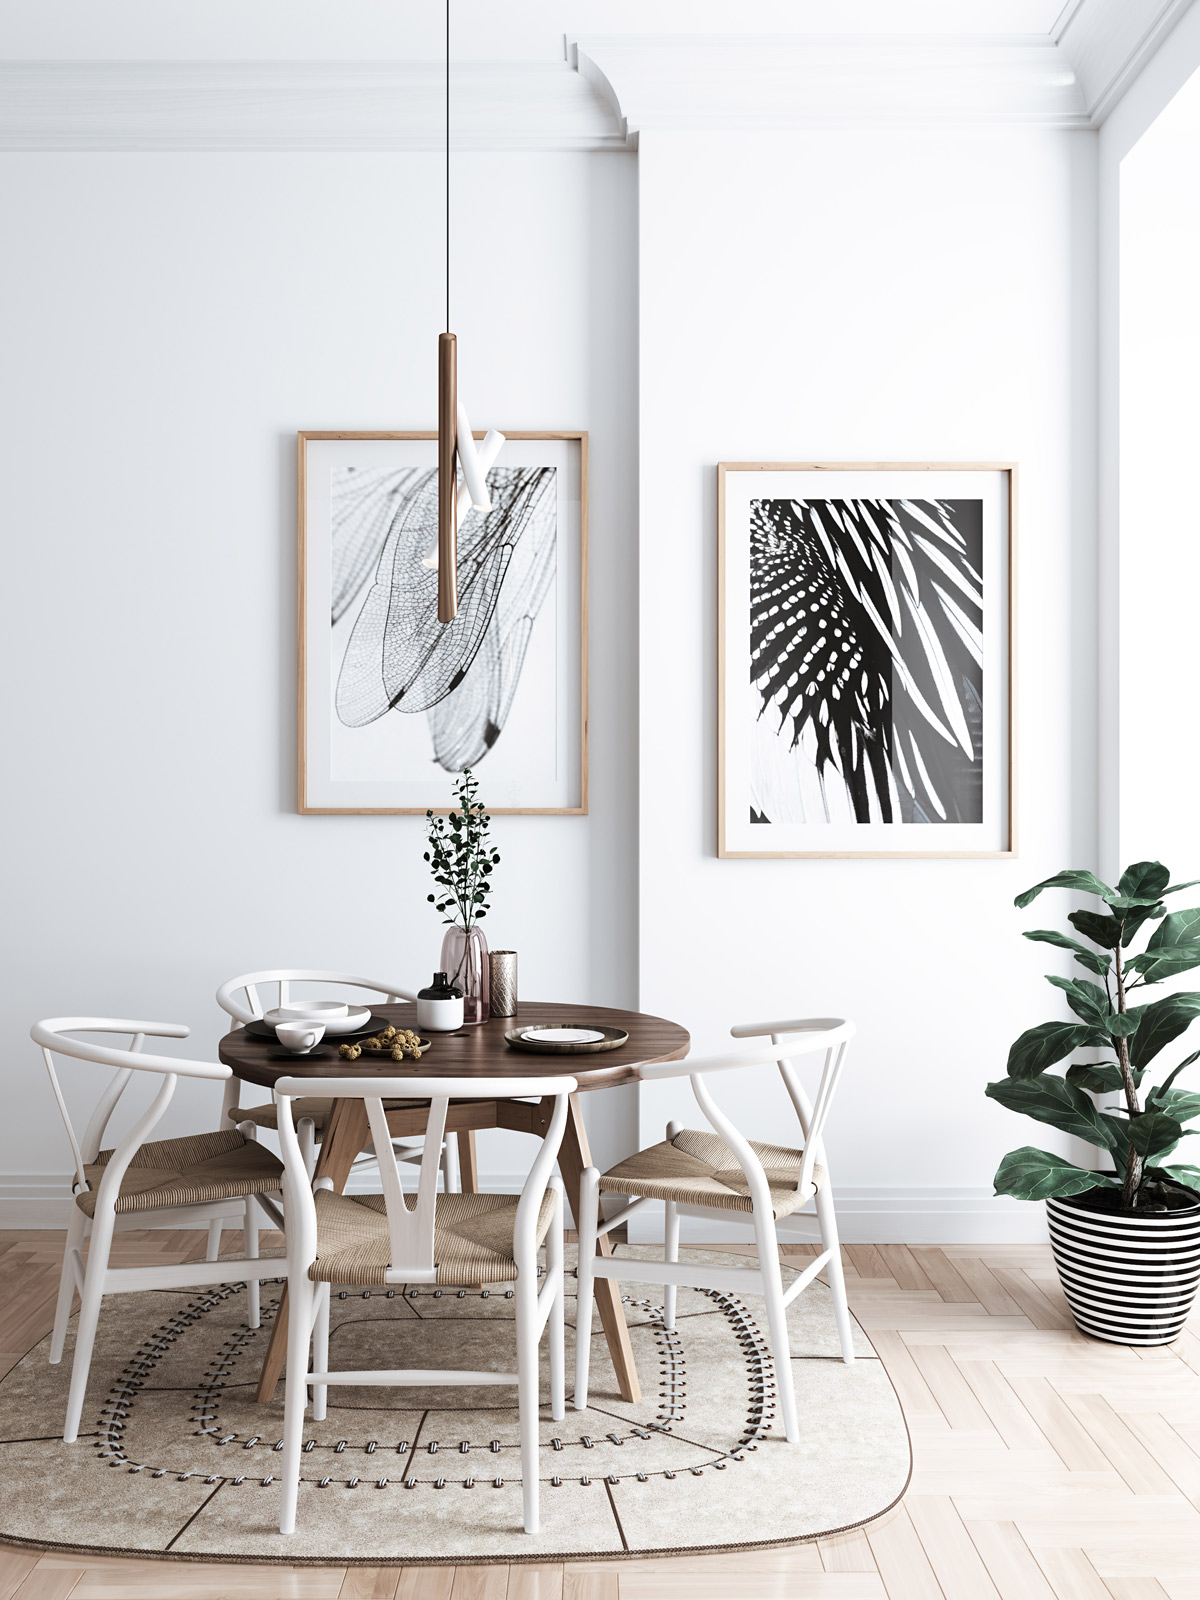 monochrome-print-white-and-wooden-furniture-dining-room